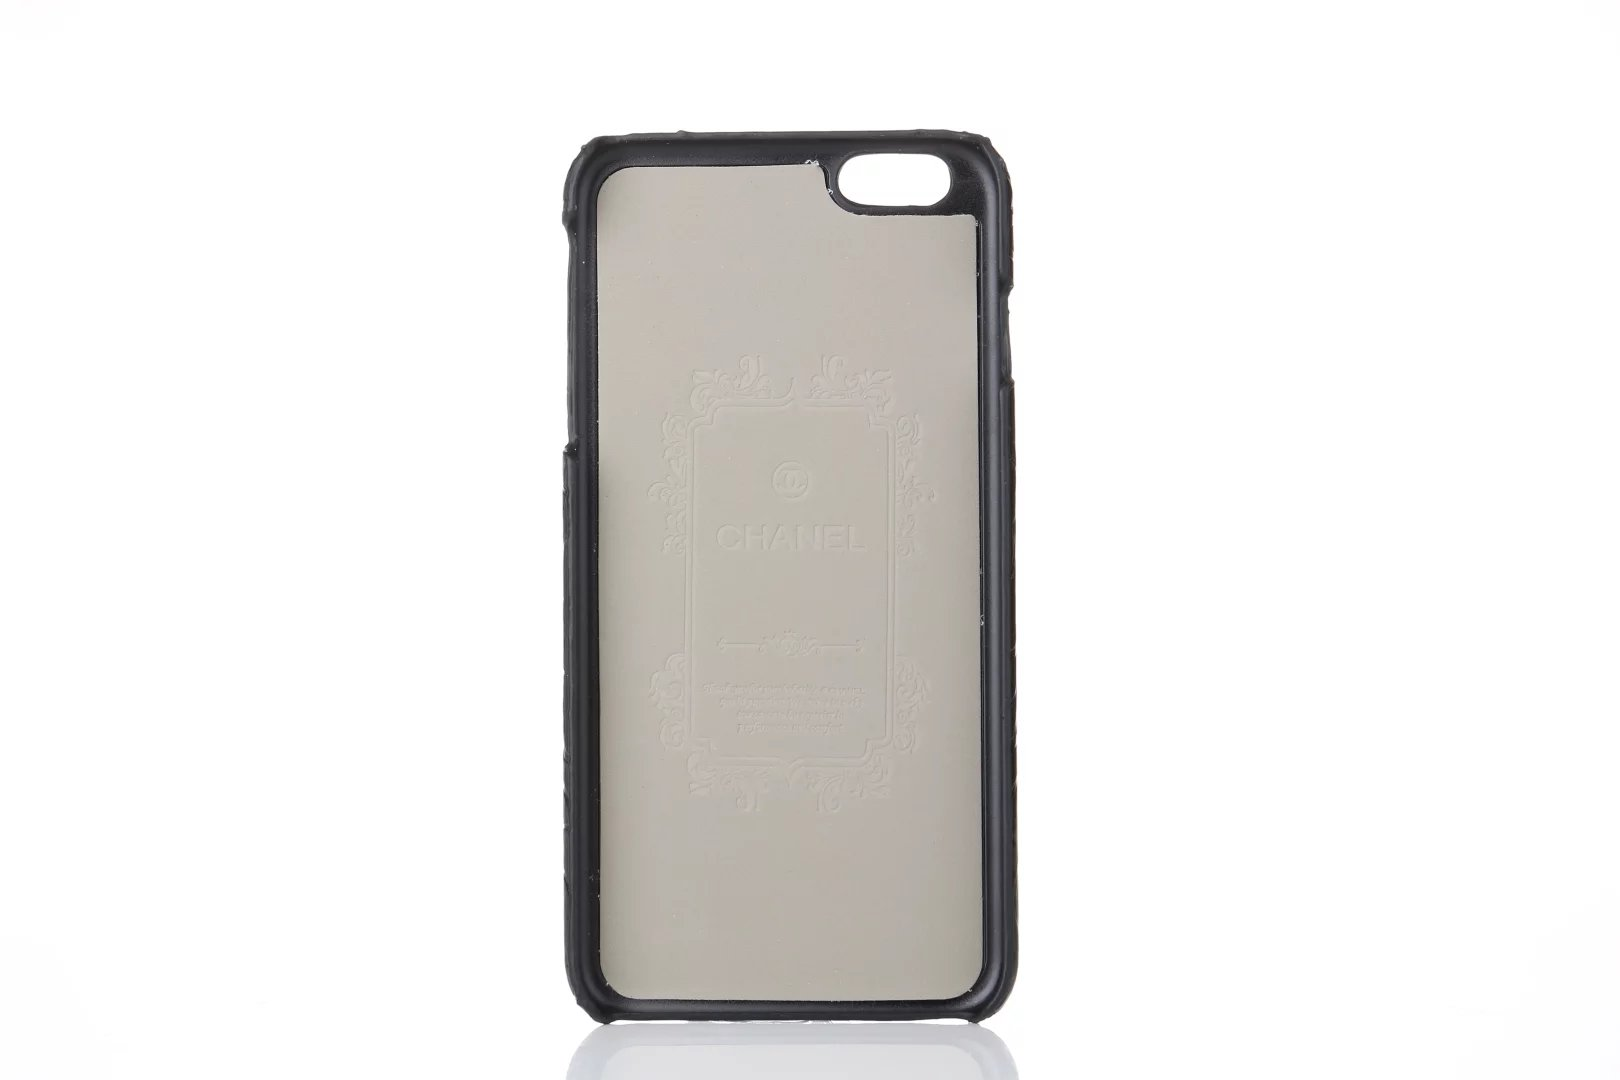 case iphone 6s 6s iphone 6s covers and cases fashion iphone6s case cases for this phone apple to release new iphone design iphone cover cover for iphone iphone 6s case women iphone case online store